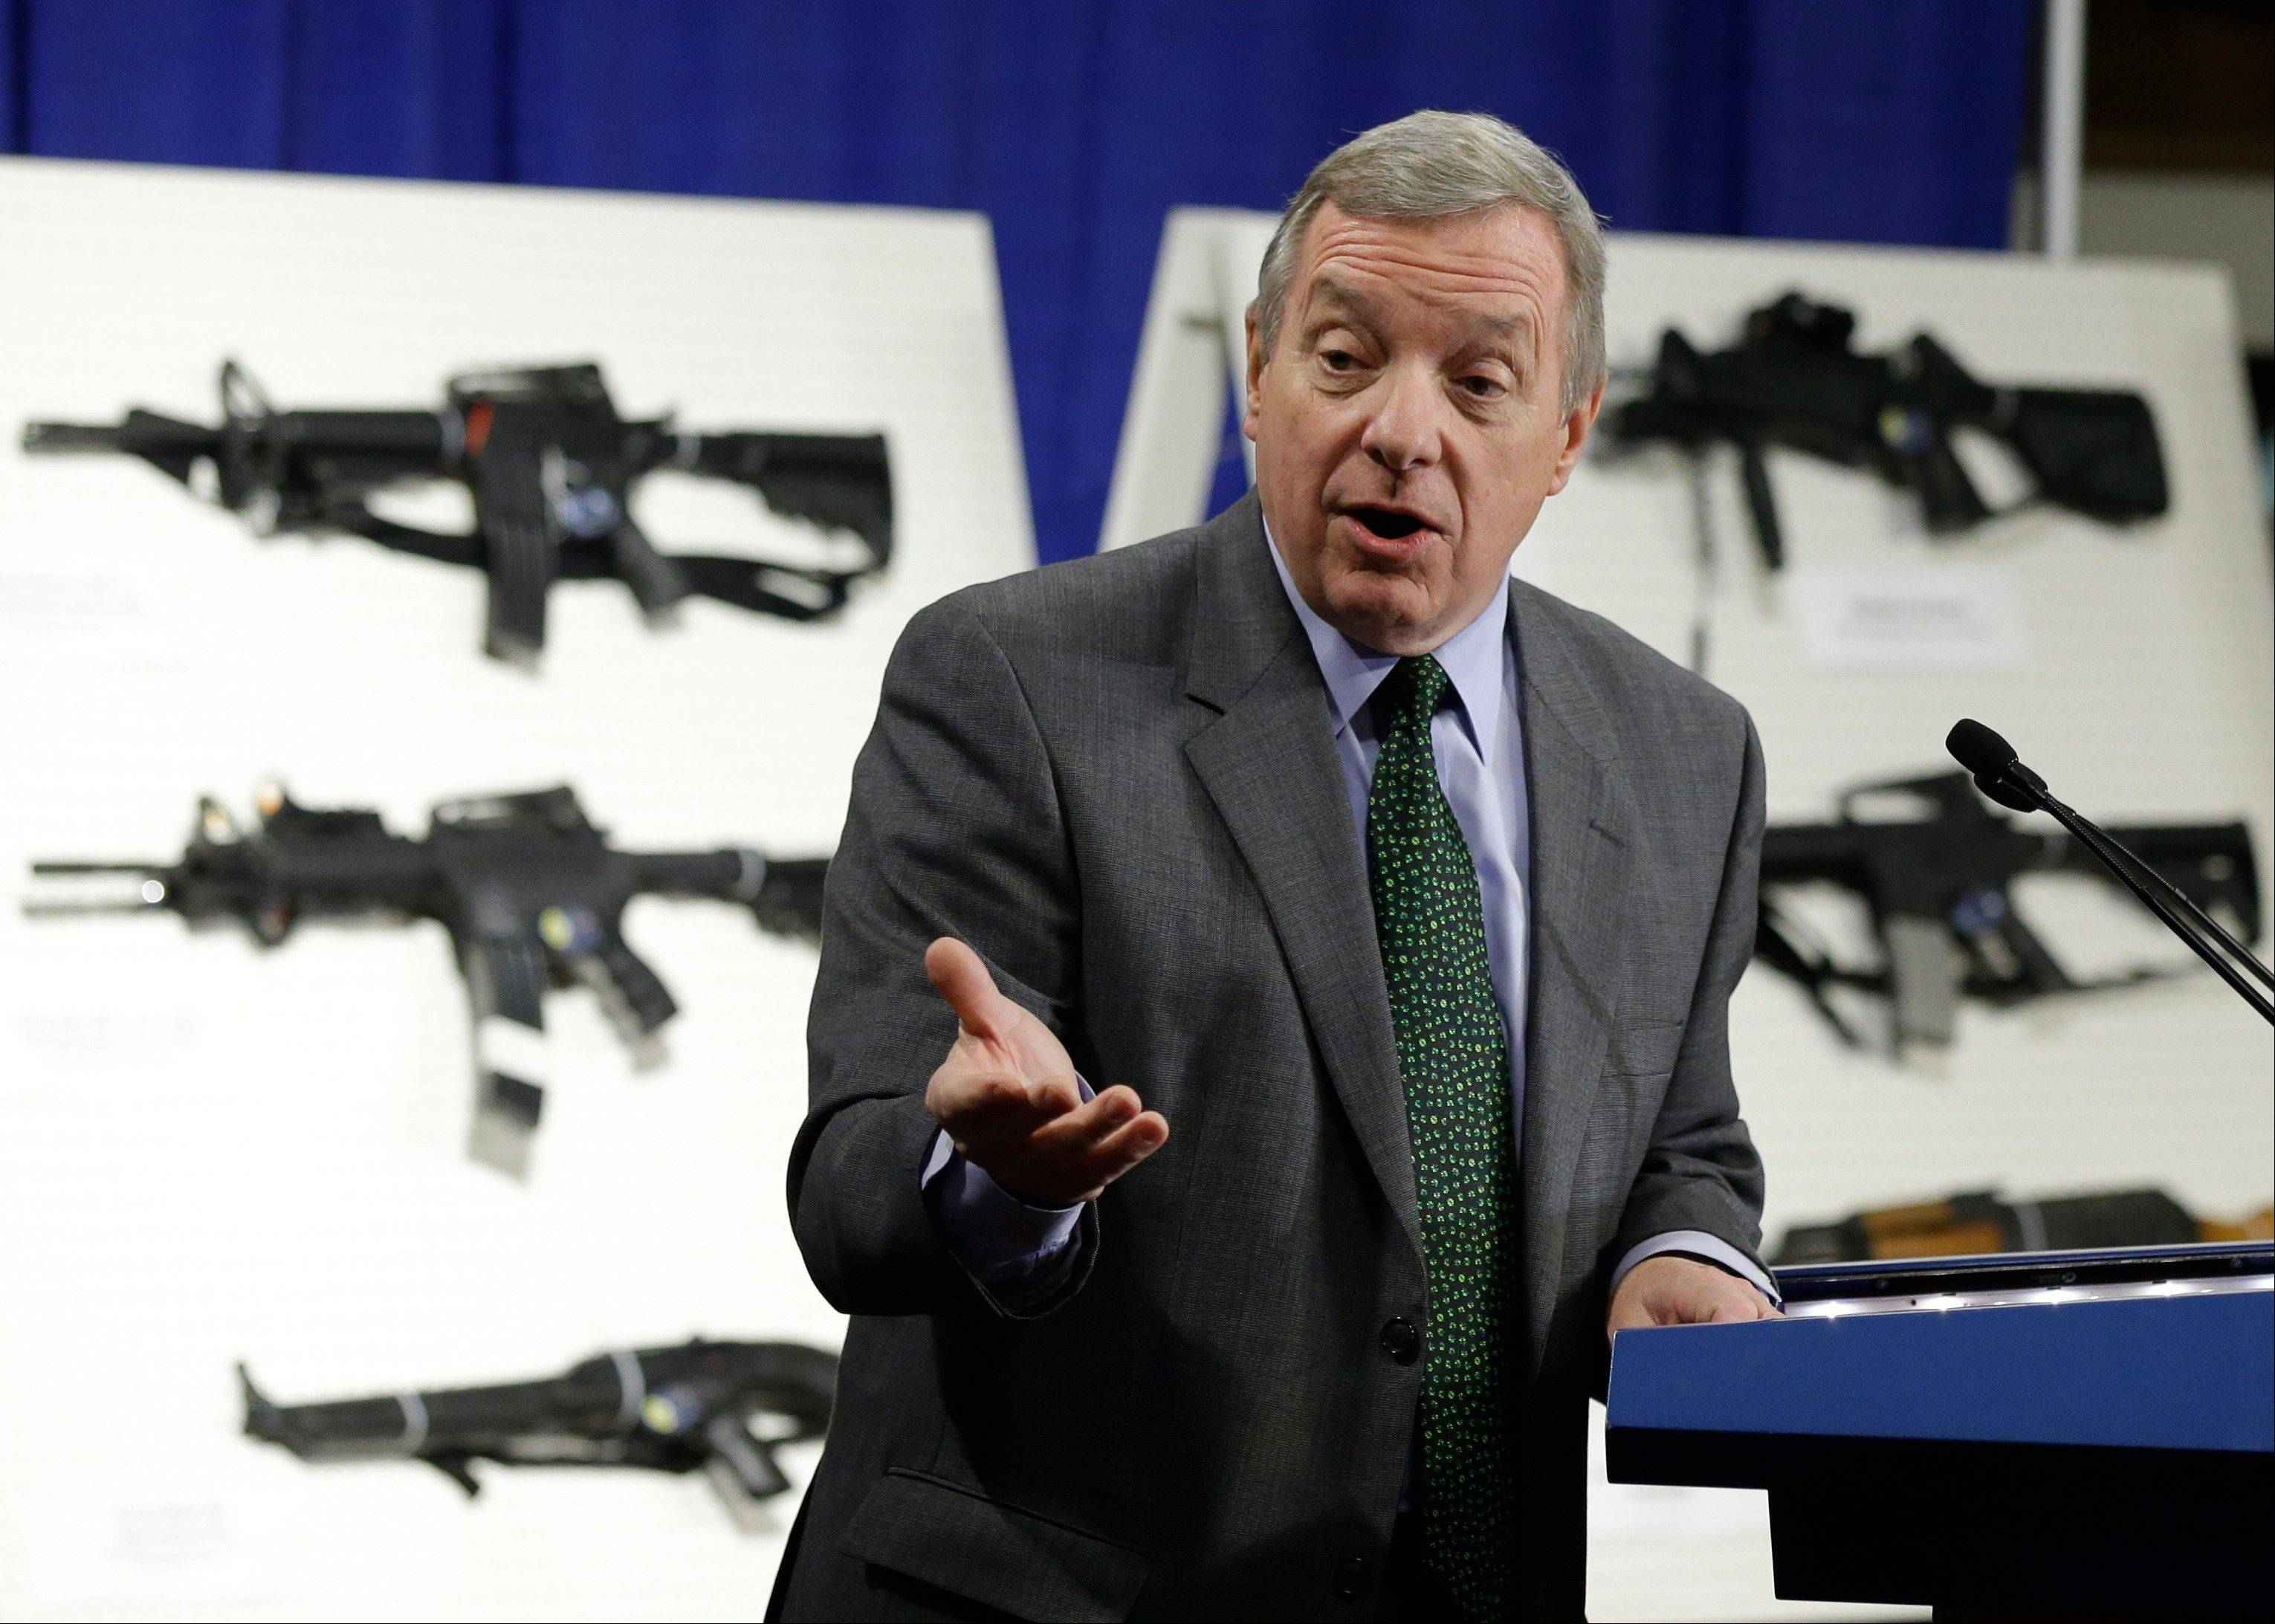 Sen. Dick Durbin speaks during a news conference on Capitol Hill to introduce legislation on assault weapons. Another bill Durbin is pushing would crack down on so-called straw purchasers, those people who buy guns legally and then provide them to criminals and others who are not legally allowed to carry them.